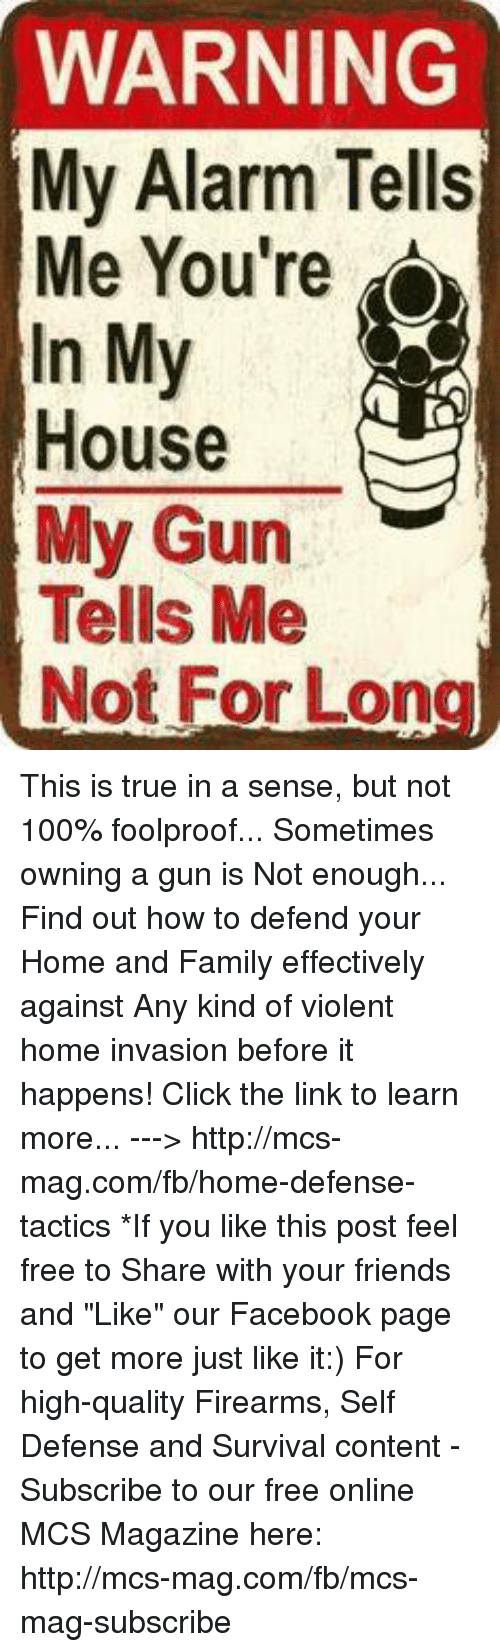 """foolproof: WARNING  My Alarm Tells  Me You're o  In My  House  My Gun  Tells Me  Not For Lon This is true in a sense, but not 100% foolproof... Sometimes owning a gun is Not enough... Find out how to defend your Home and Family effectively against Any kind of violent home invasion before it happens! Click the link to learn more...  ---> http://mcs-mag.com/fb/home-defense-tactics   *If you like this post feel free to Share with your friends and """"Like"""" our Facebook page to get more just like it:) For high-quality Firearms, Self Defense and Survival content - Subscribe to our free online MCS Magazine here: http://mcs-mag.com/fb/mcs-mag-subscribe"""